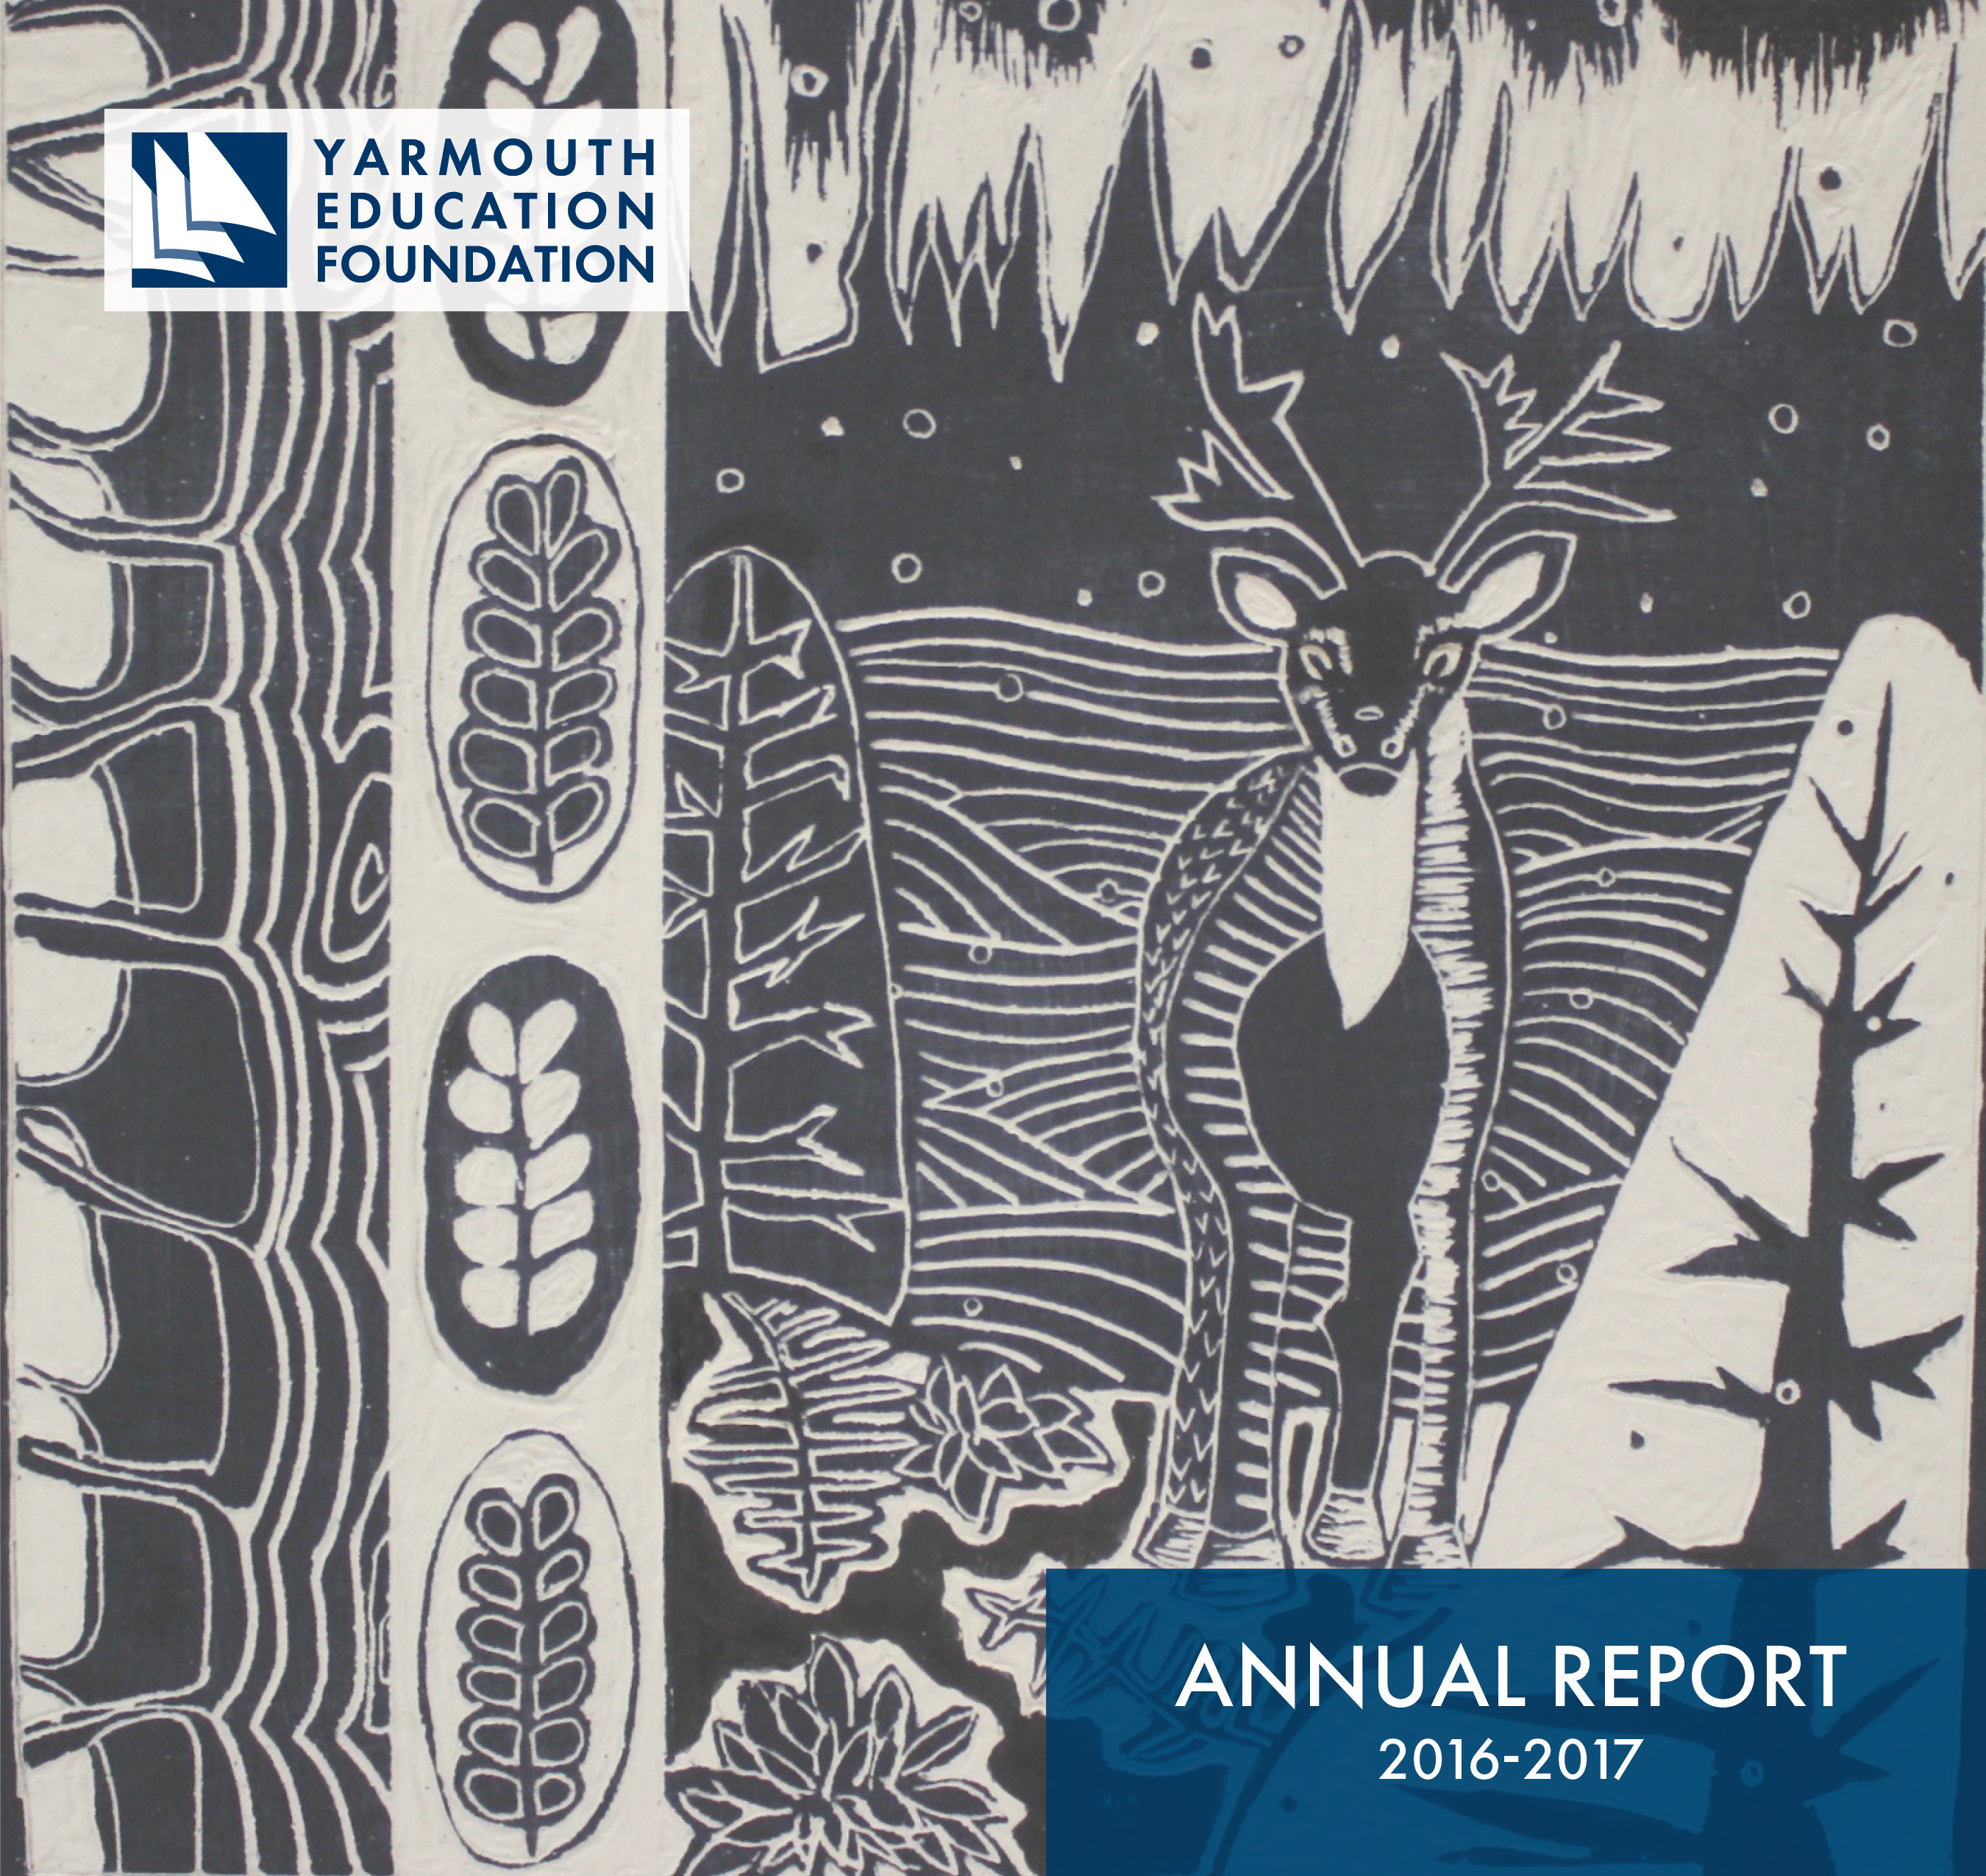 YEF Annual Report 2016-17